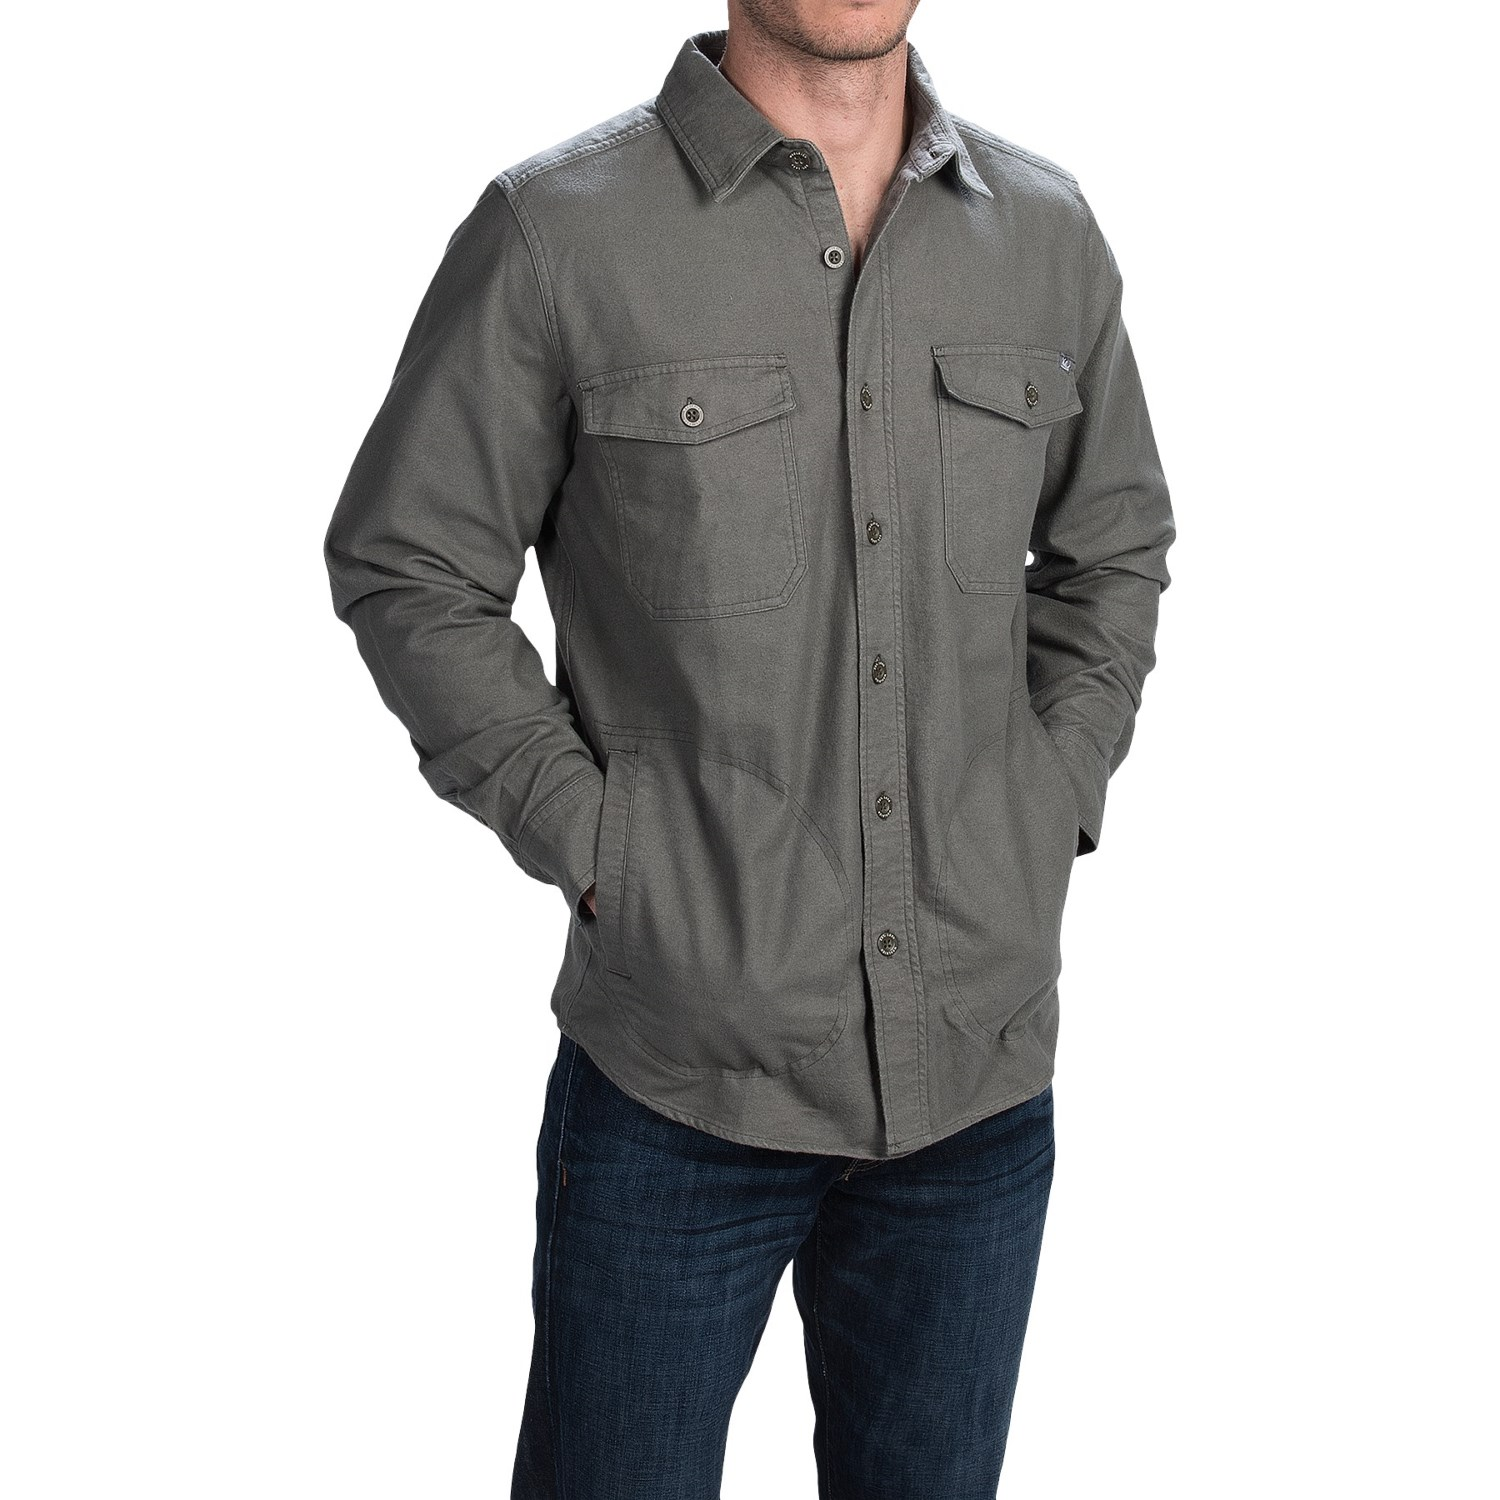 Men's Shirts. Get the best of both worlds. Casual dress shirts incorporate seamlessly into your laidback and business rotations. From solid color to patterned selections, find .